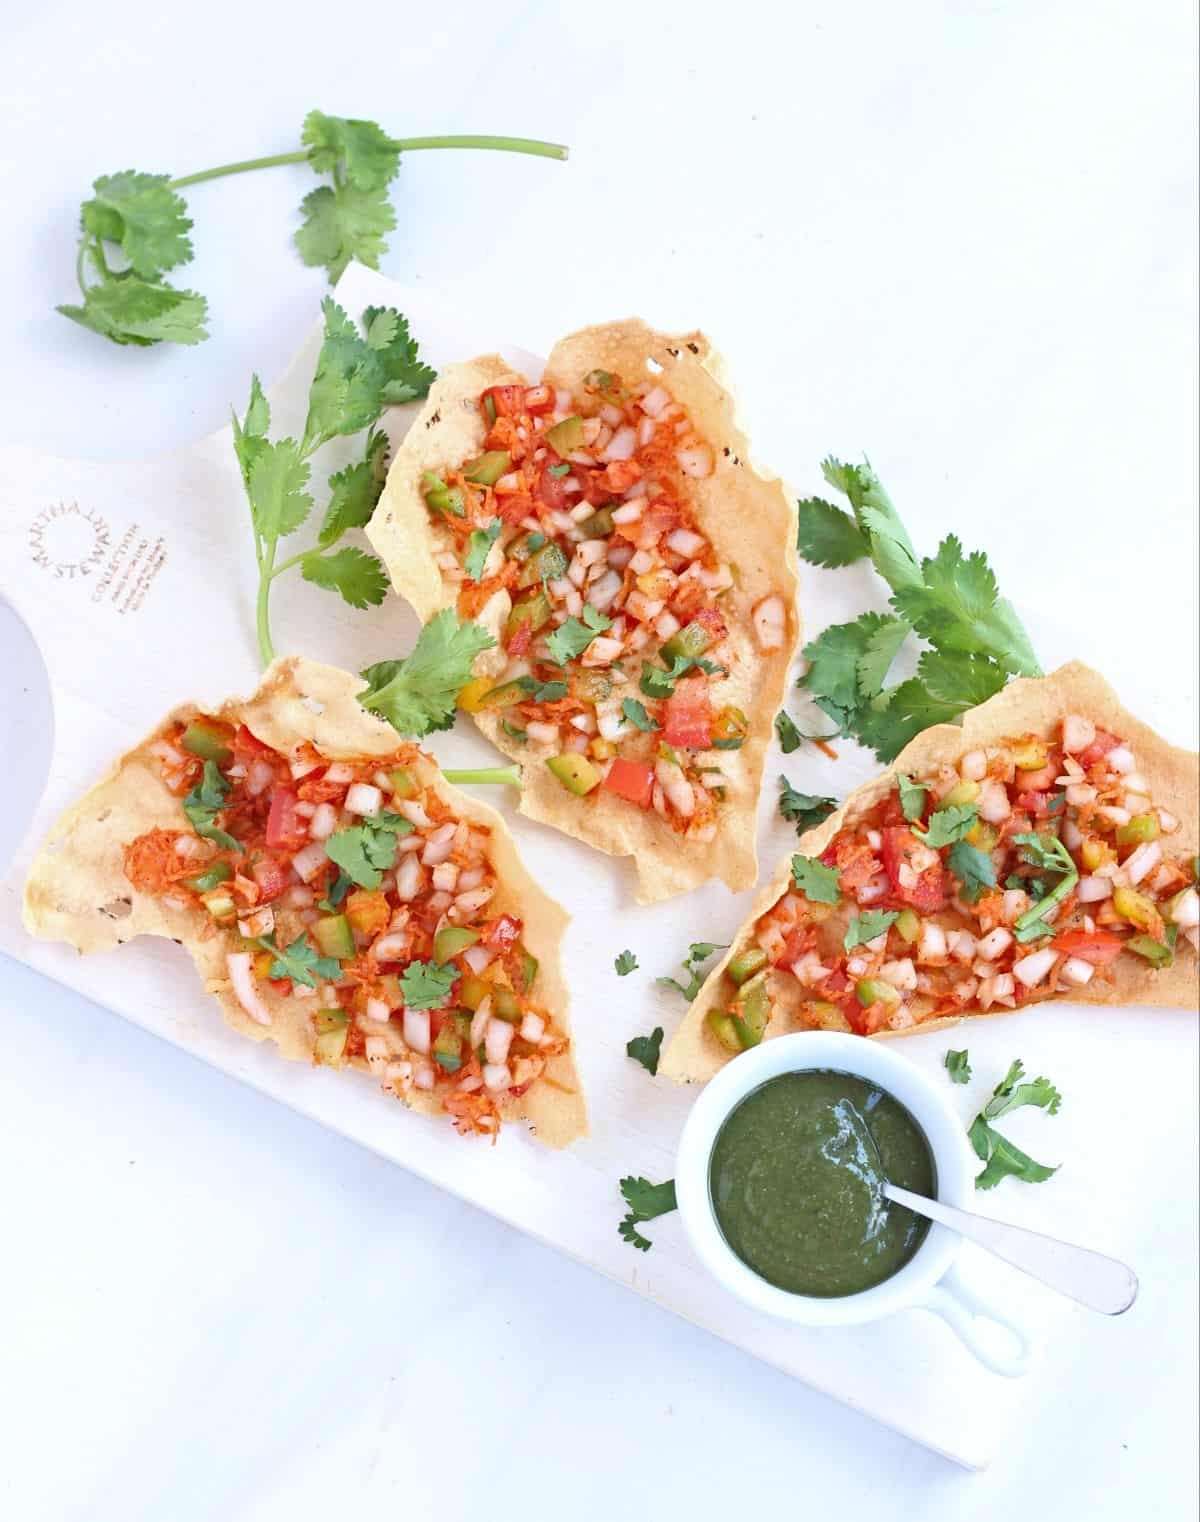 masala papad appetizer with cilantro and green chutney